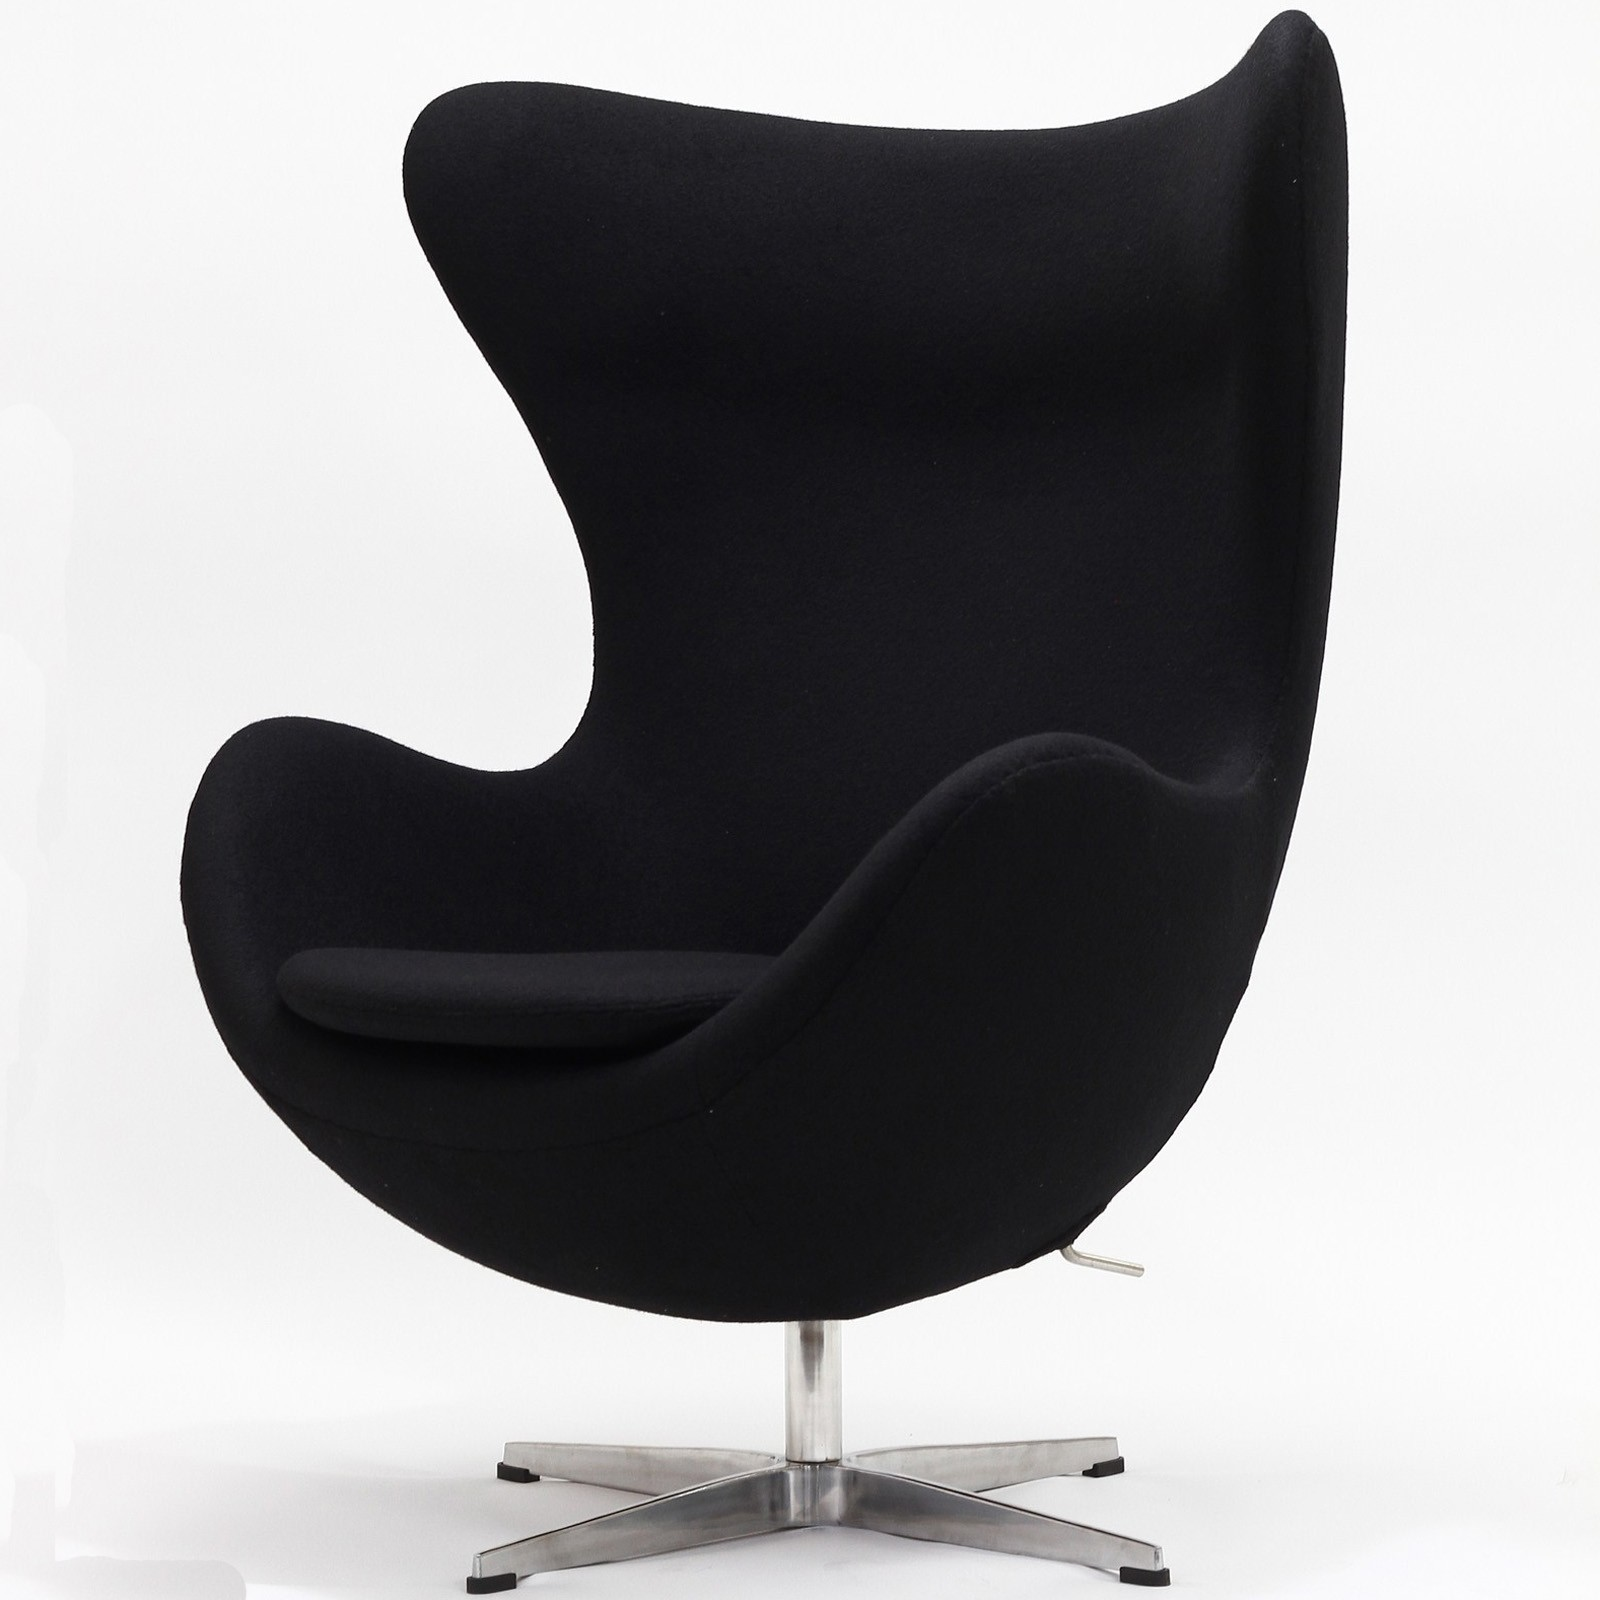 arne jacobsen egg chair 6530 1. Black Bedroom Furniture Sets. Home Design Ideas